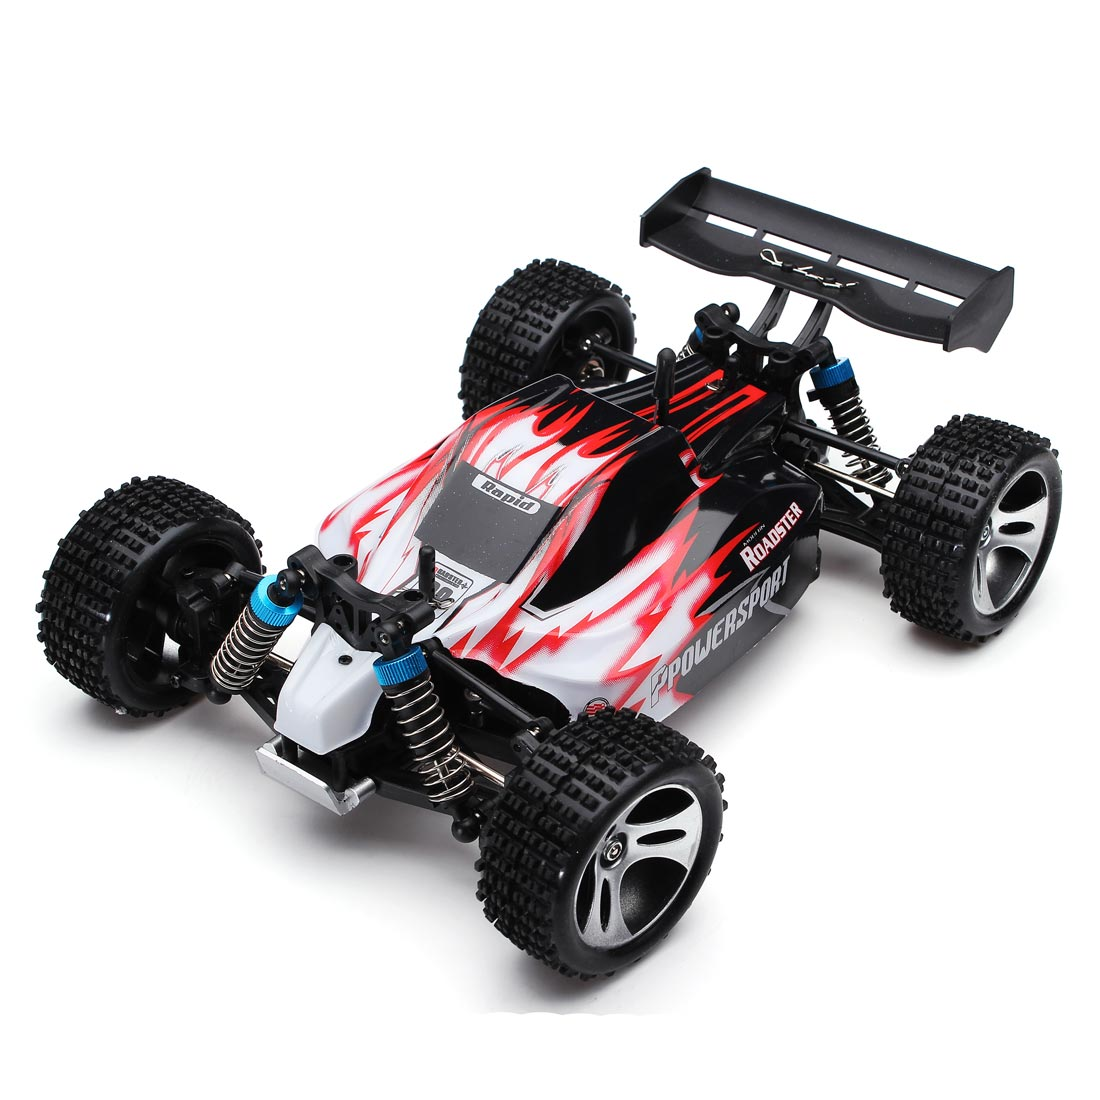 RC Car WLtoys A959 2.4G 1/18 Scale Remote Control Off-road Racing Car High Speed Stunt SUV Toy Gift For Boy RC Mini Car RTR wltoys a959 rc car off road car 1 18 scale 2 4g 4wd rtr off road buggy high speed racing car remote control truck electric rtr